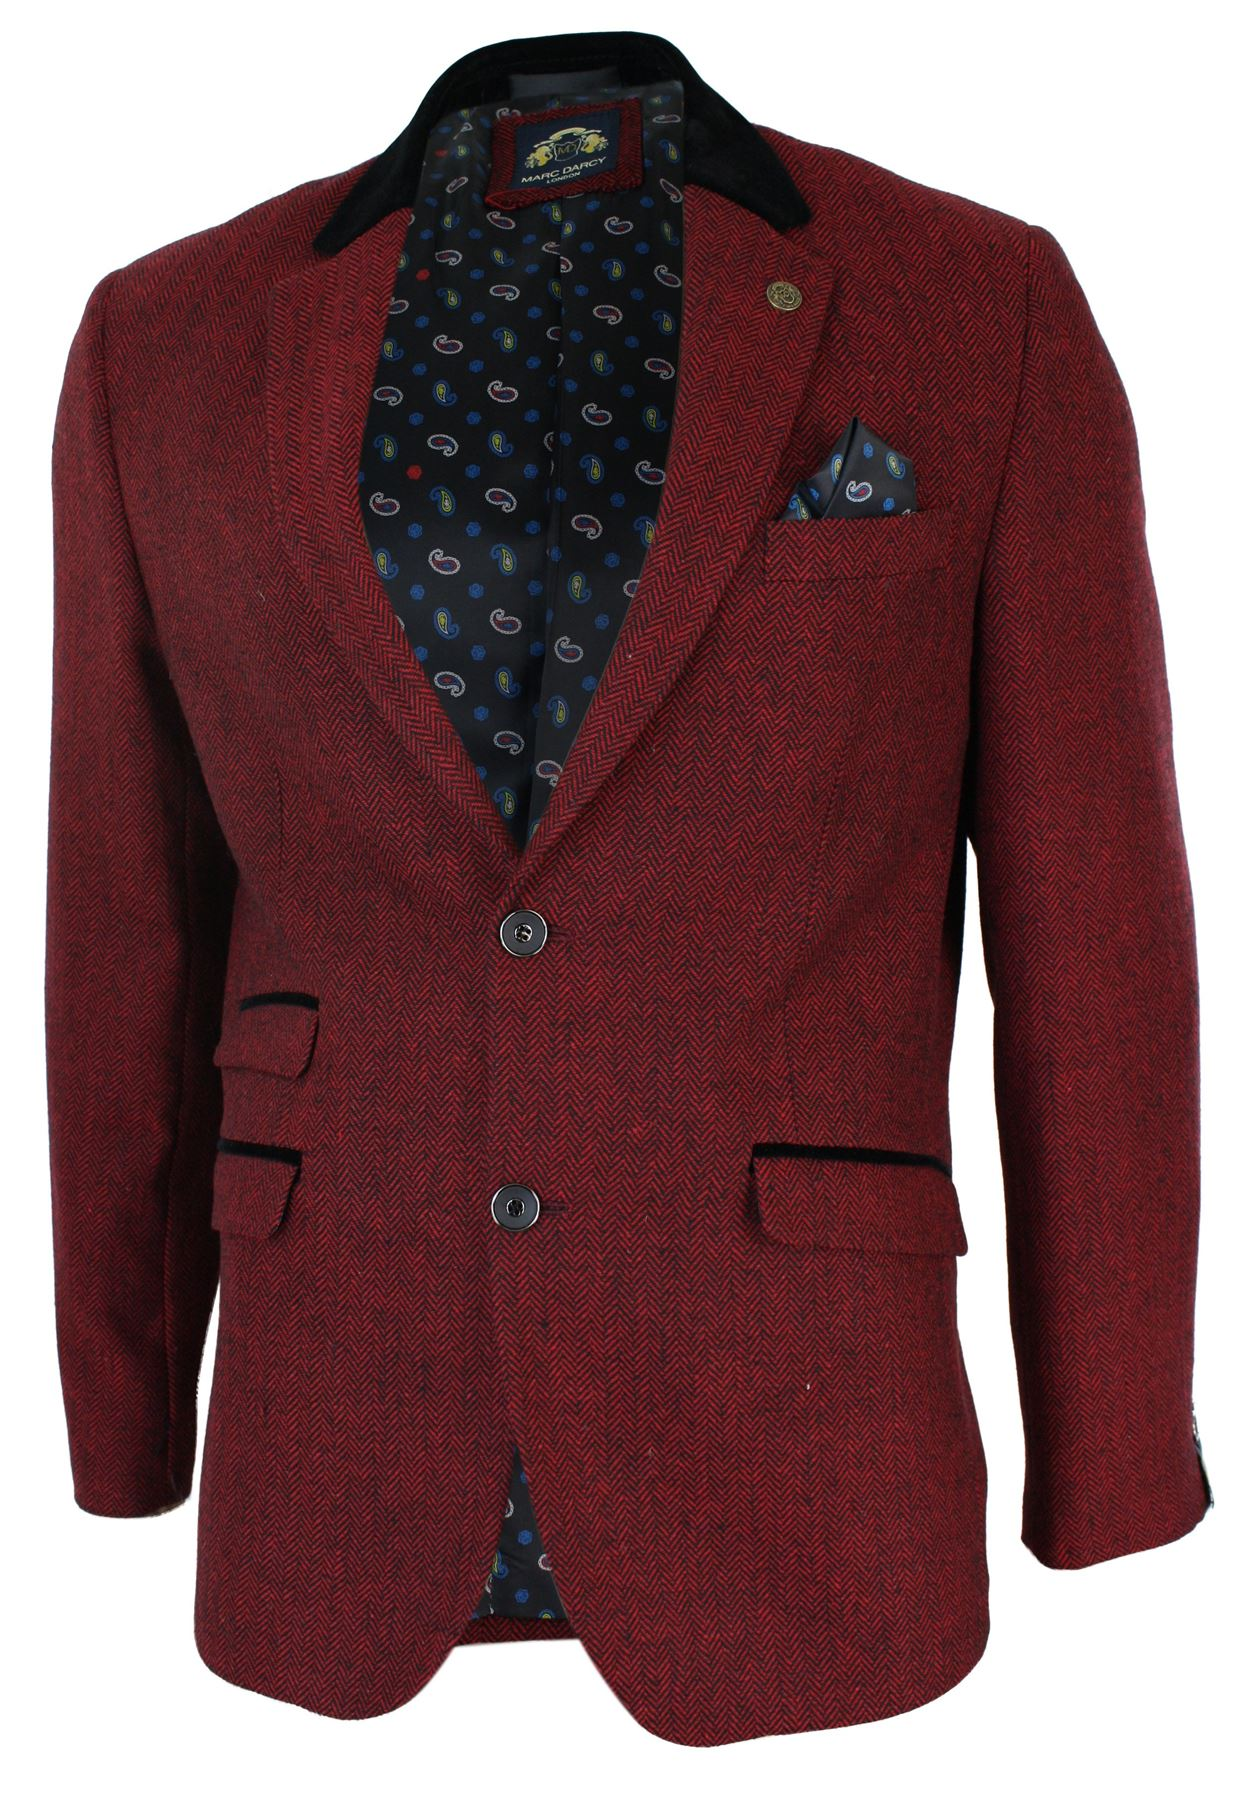 Shop for men's slim fit blazers & slim fit sports coats. See the latest styles, brands & colors of slim fit blazers from Men's Wearhouse. × Restrictions Apply See terms. Free Standard Shipping on $99+ | Free Returns. Free Tweed (2) Windowpane (6) Brand.